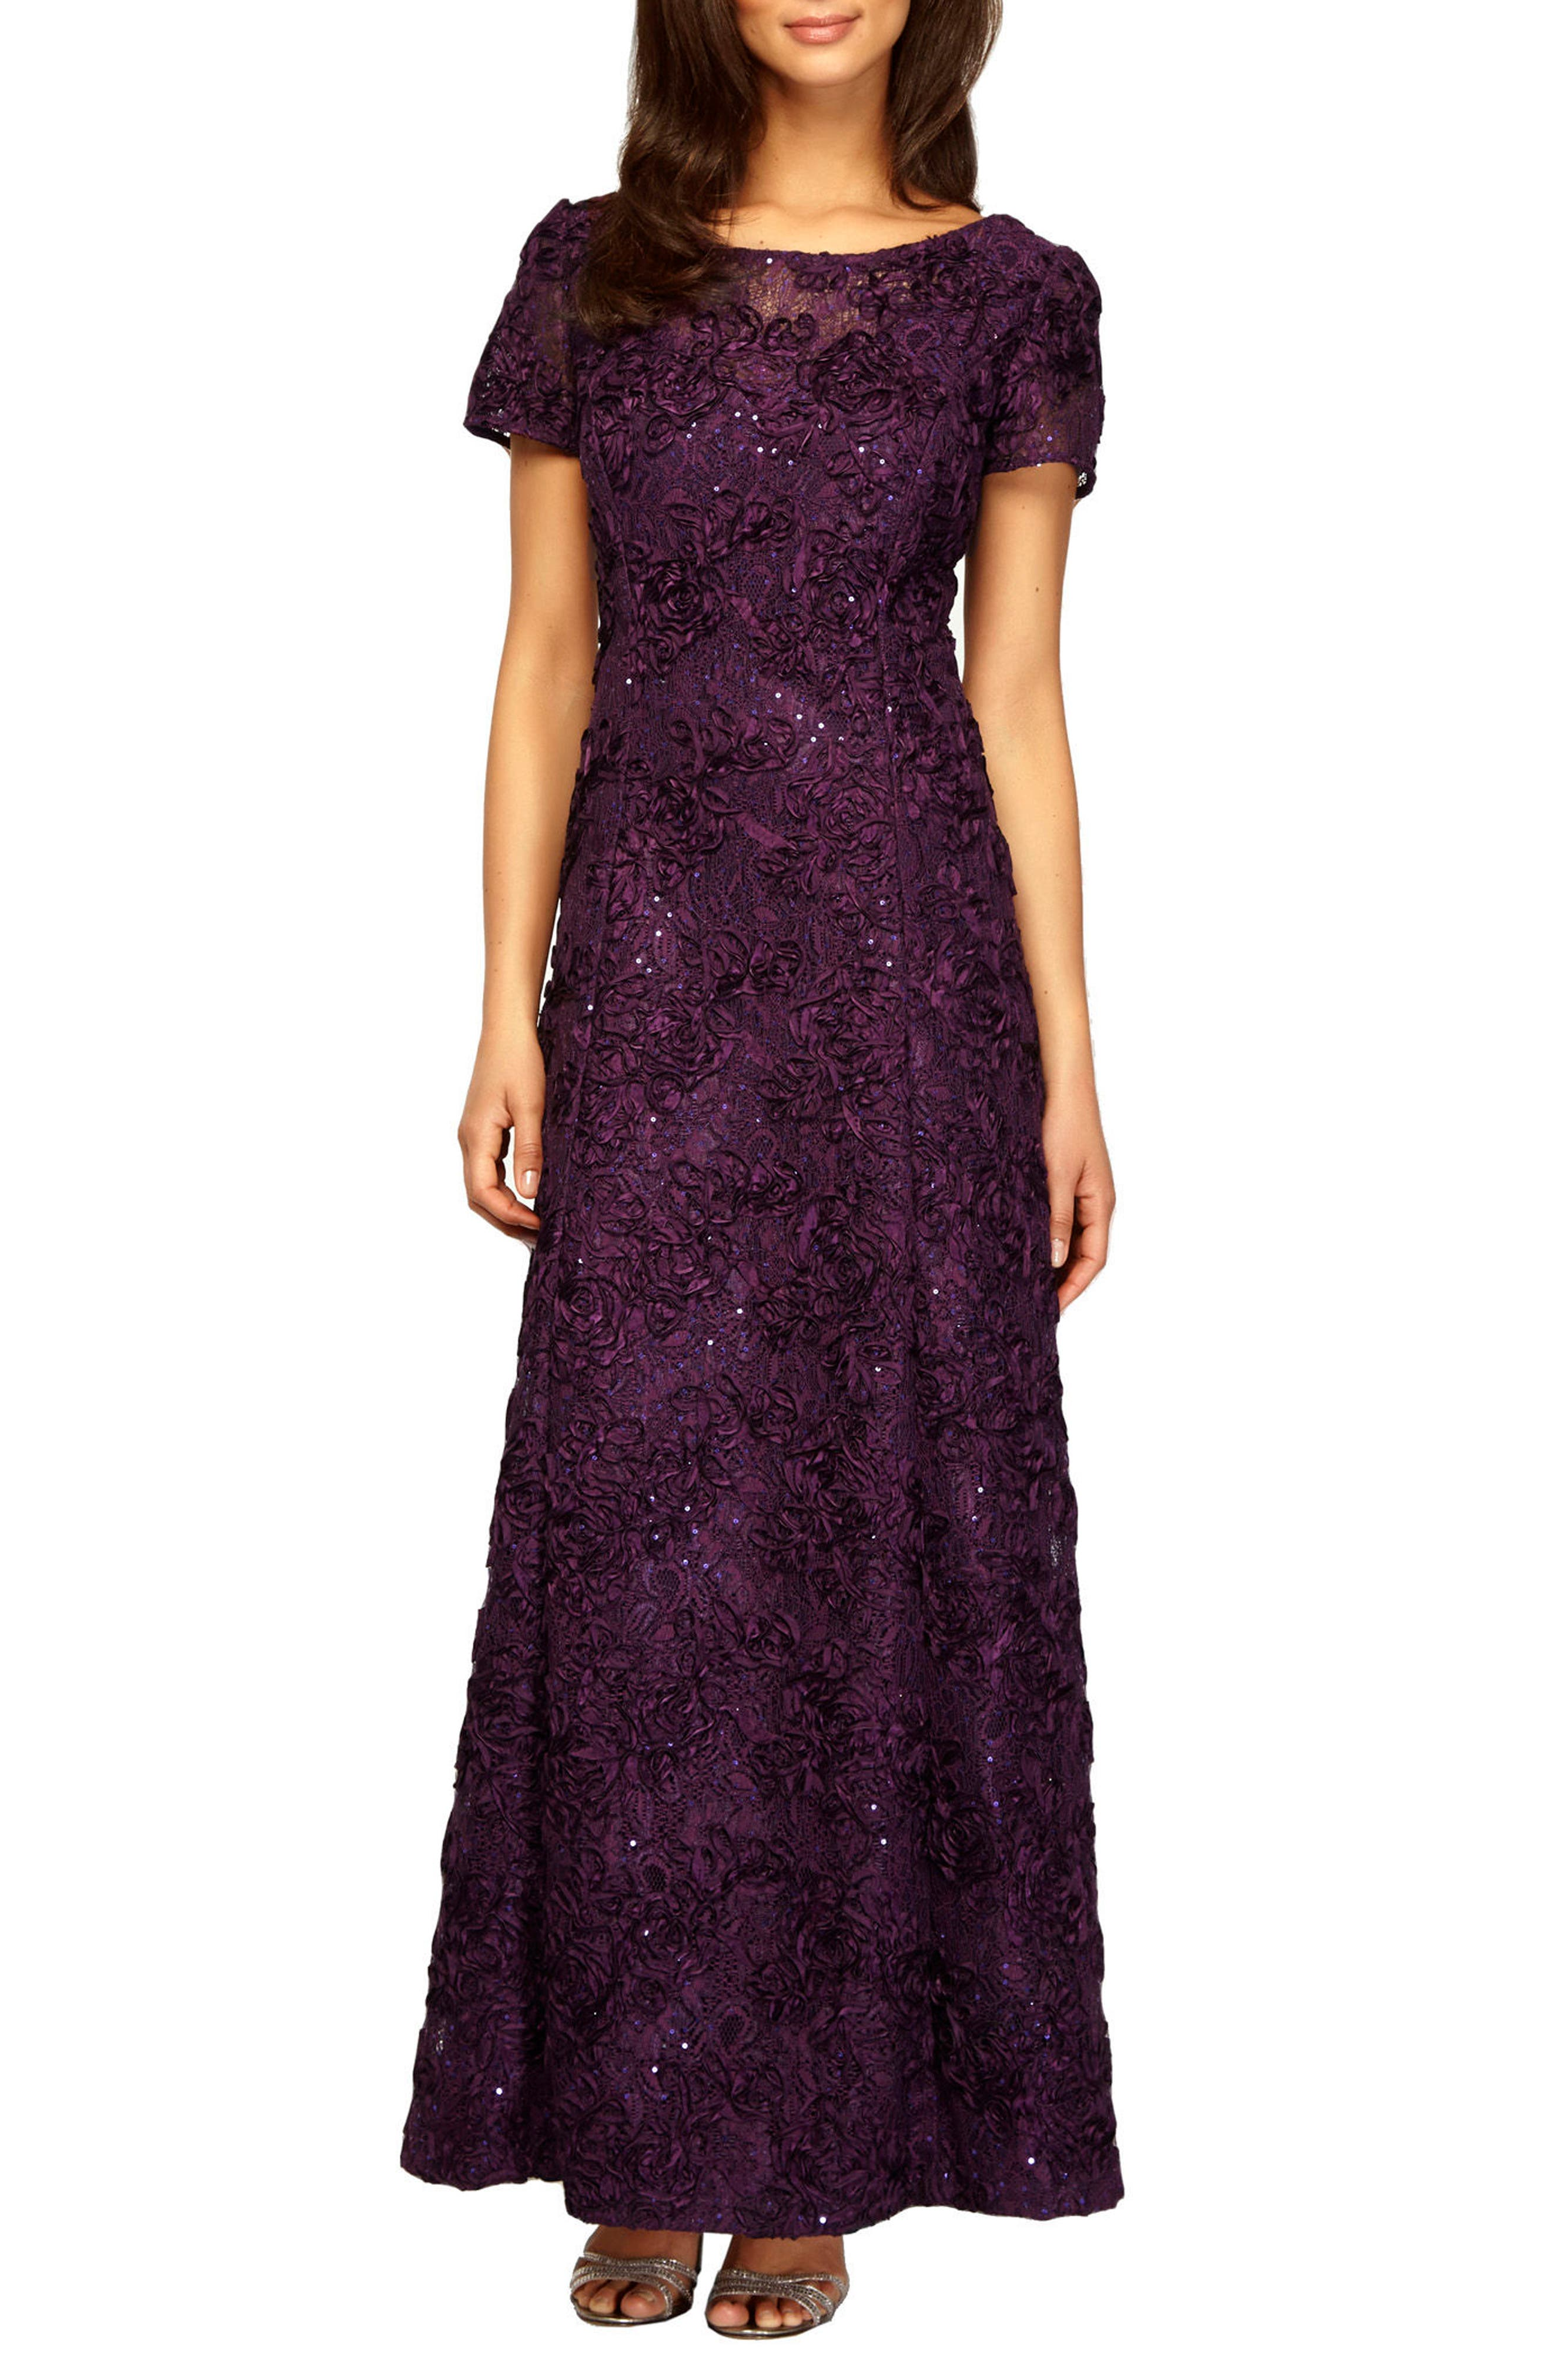 Alternate Image 1 Selected - Alex Evenings Embellished Lace Gown (Regular & Petite)